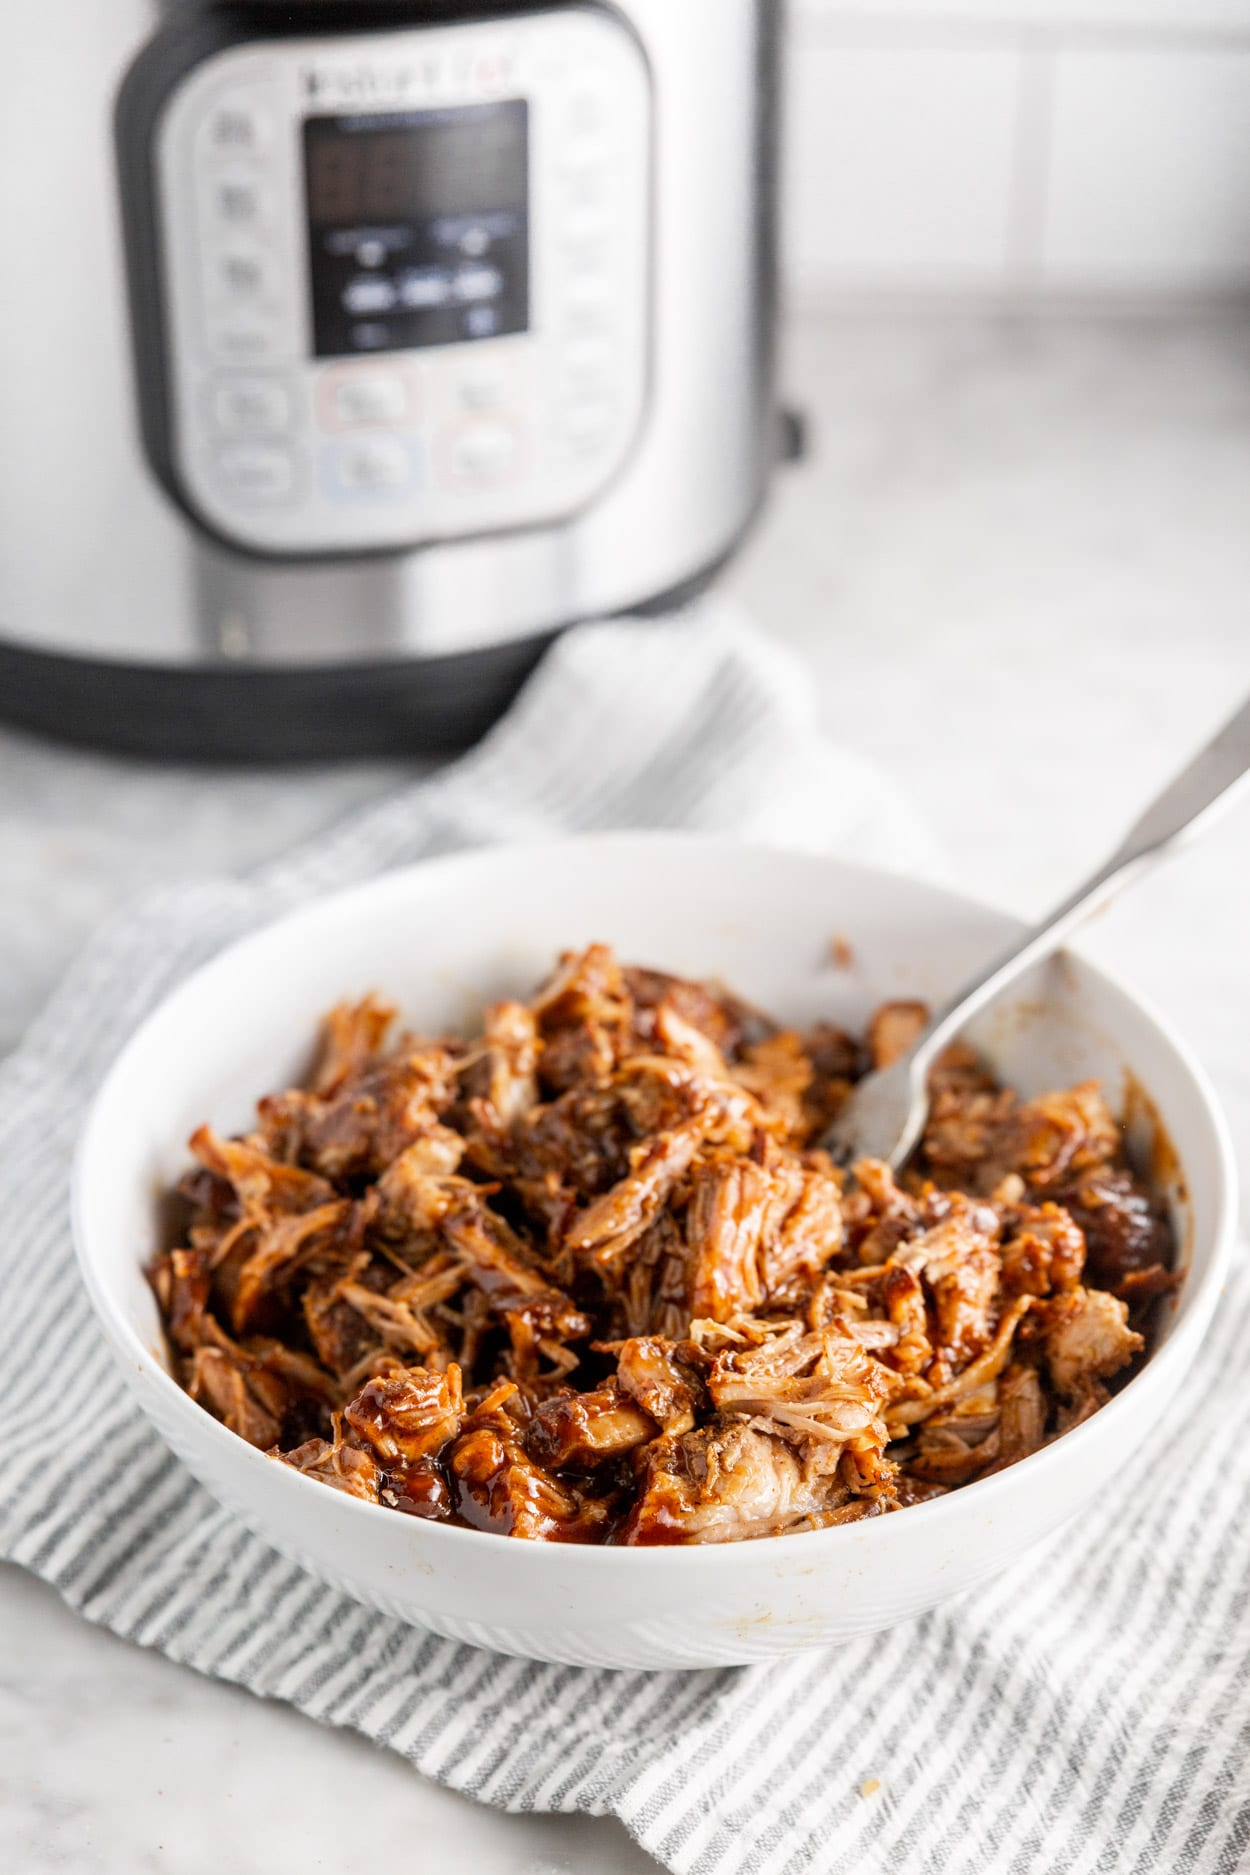 A bowl of shredded BBQ pulled pork in a bowl with an Instant Pot in the background.